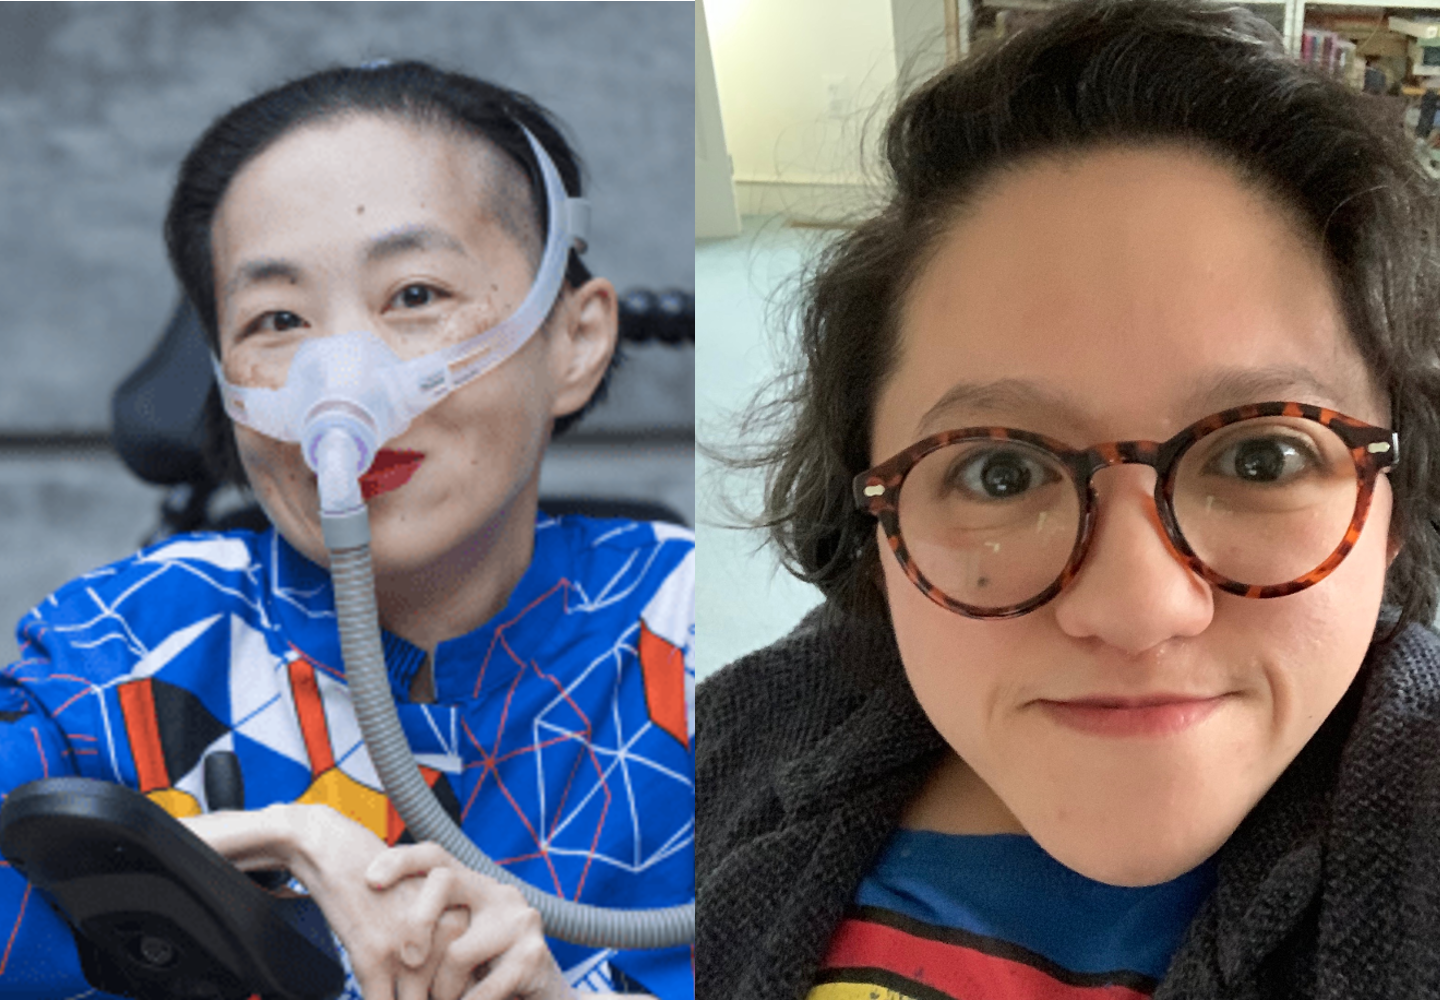 Headshots of Alice Wong and Sandy Ho. Alice is an Asian American woman in a power chair. She is wearing a blue shirt with a geometric pattern with orange, black, white, and yellow lines and cubes. She is wearing a mask over her nose attached to a gray tube and bright red lip color. She is smiling at the camera. Sandy is an Asian American disabled woman with dark wavy shoulder length hair, wearing tortoise shell glasses, a dark blazer and a blue shirt.